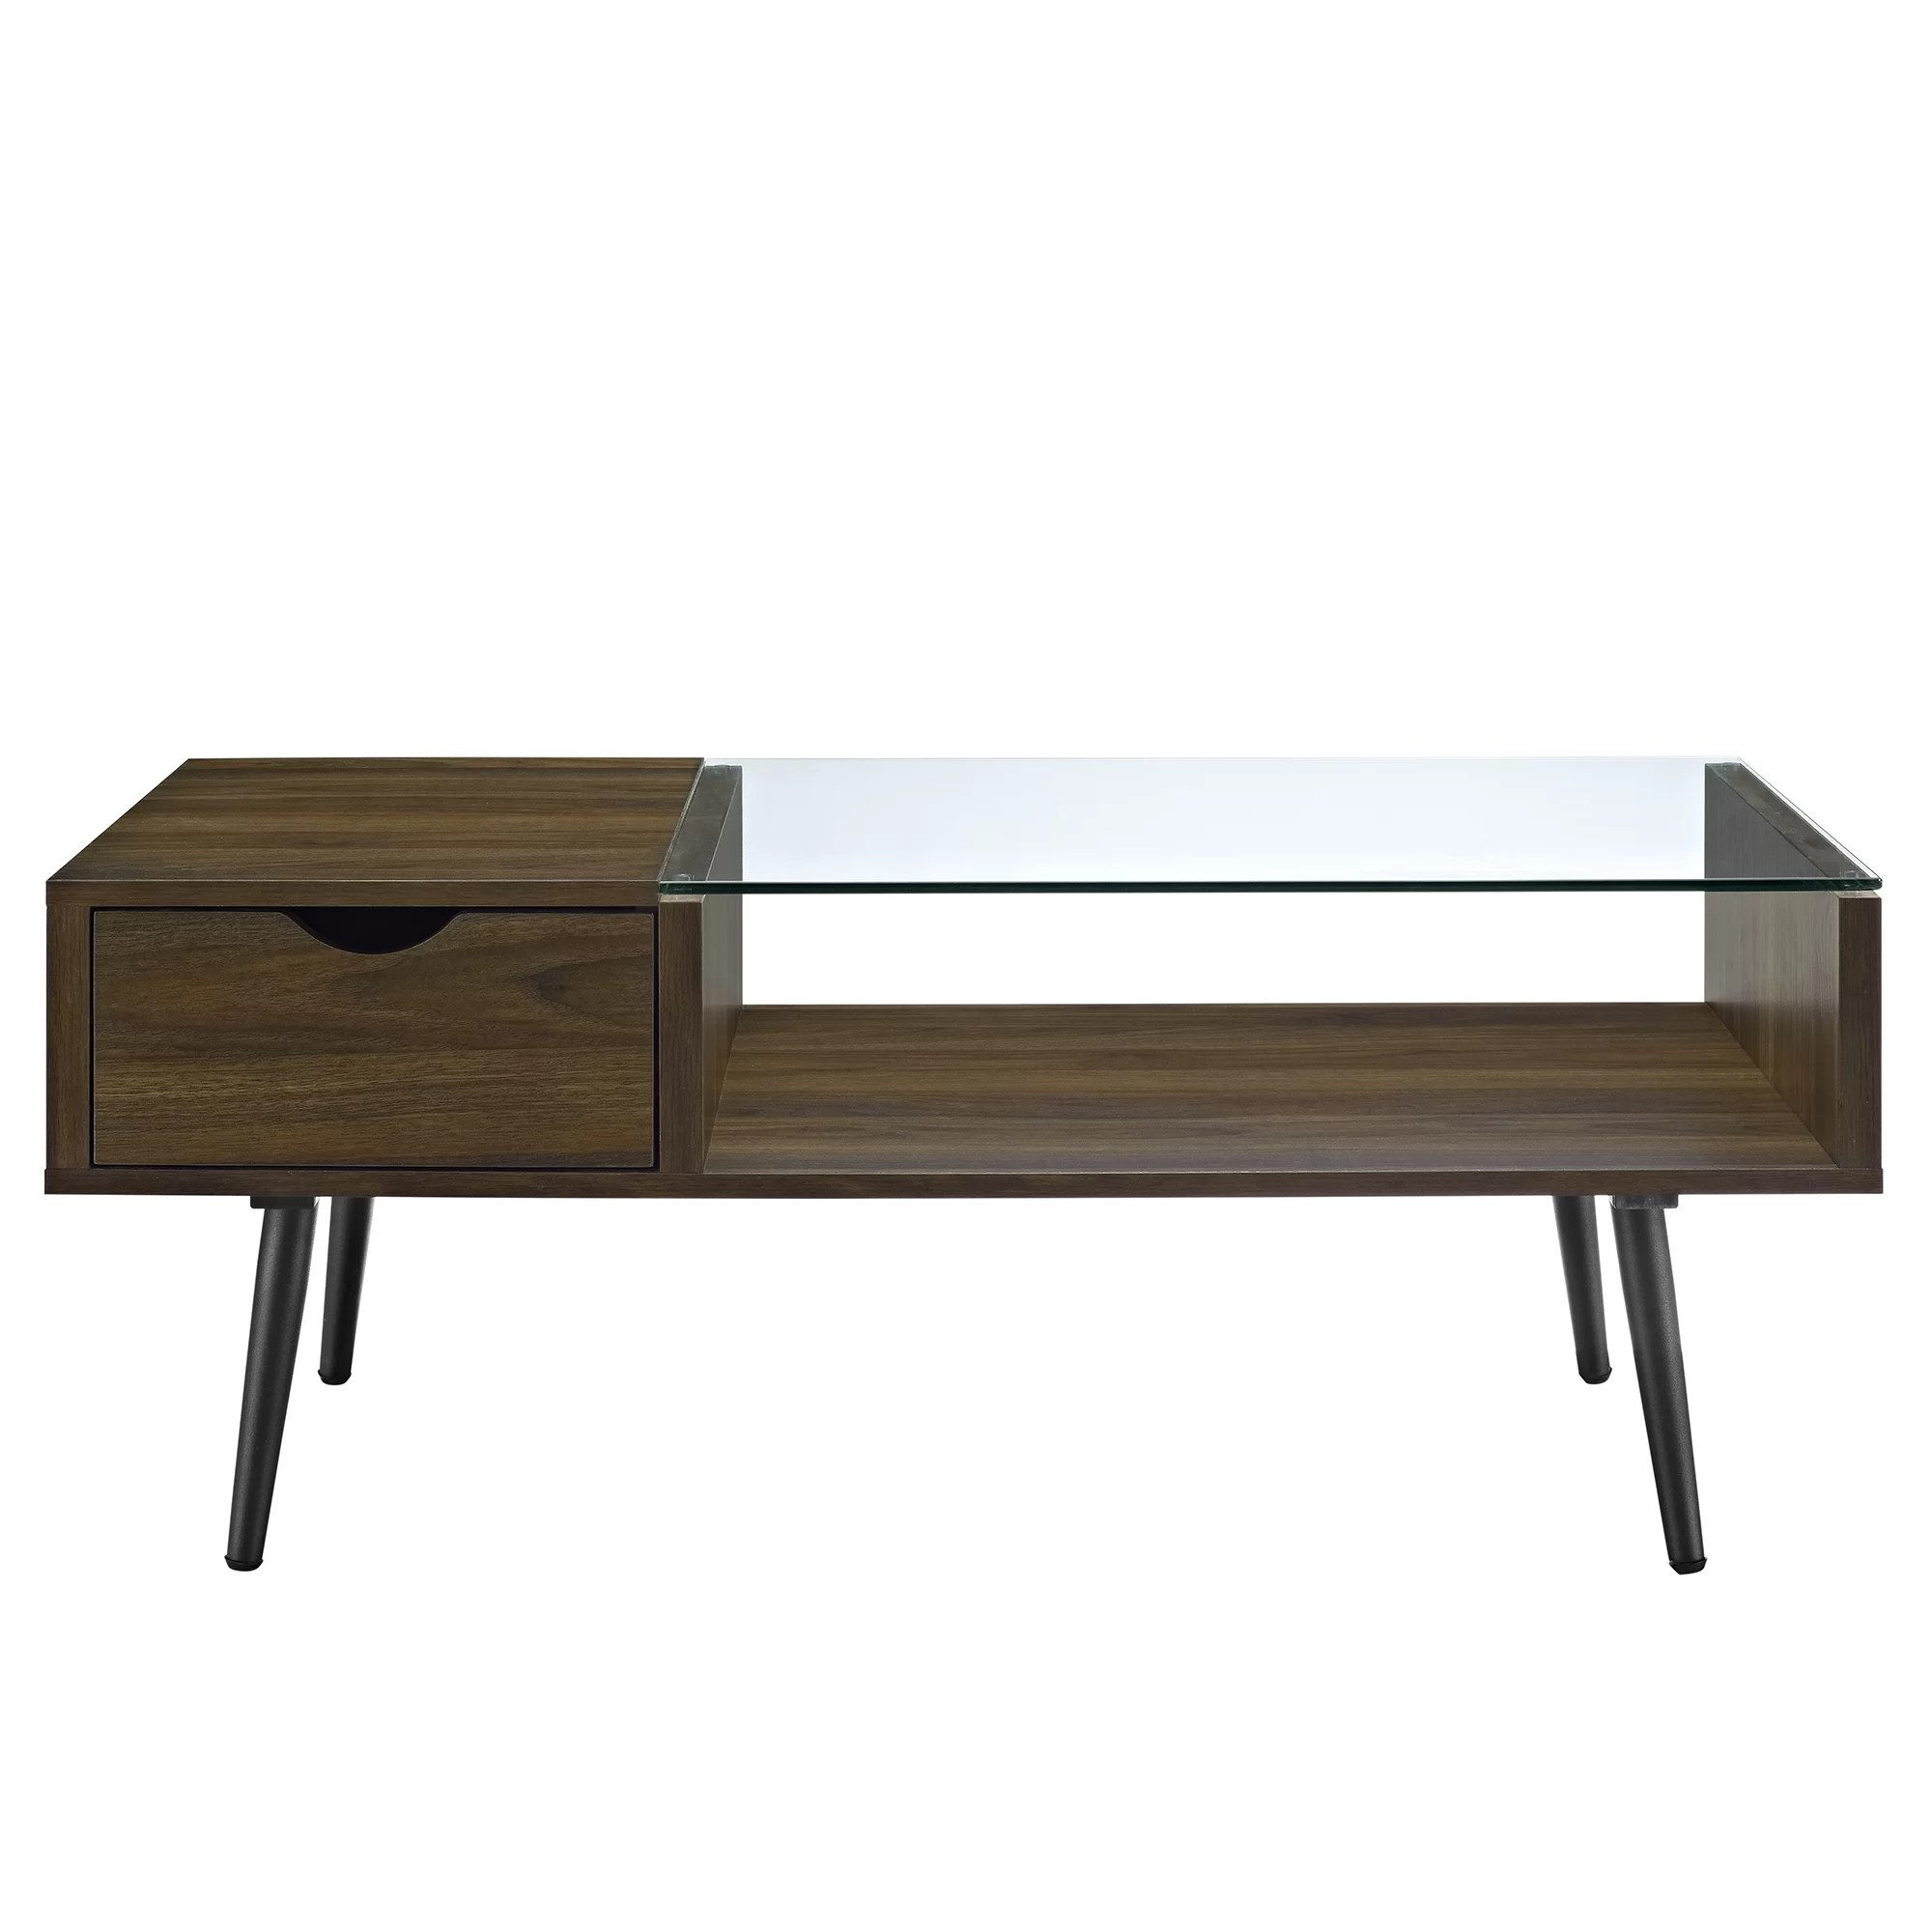 Vero Wood Couchtisch George Oliver Cirillo Wood And Glass Coffee Table